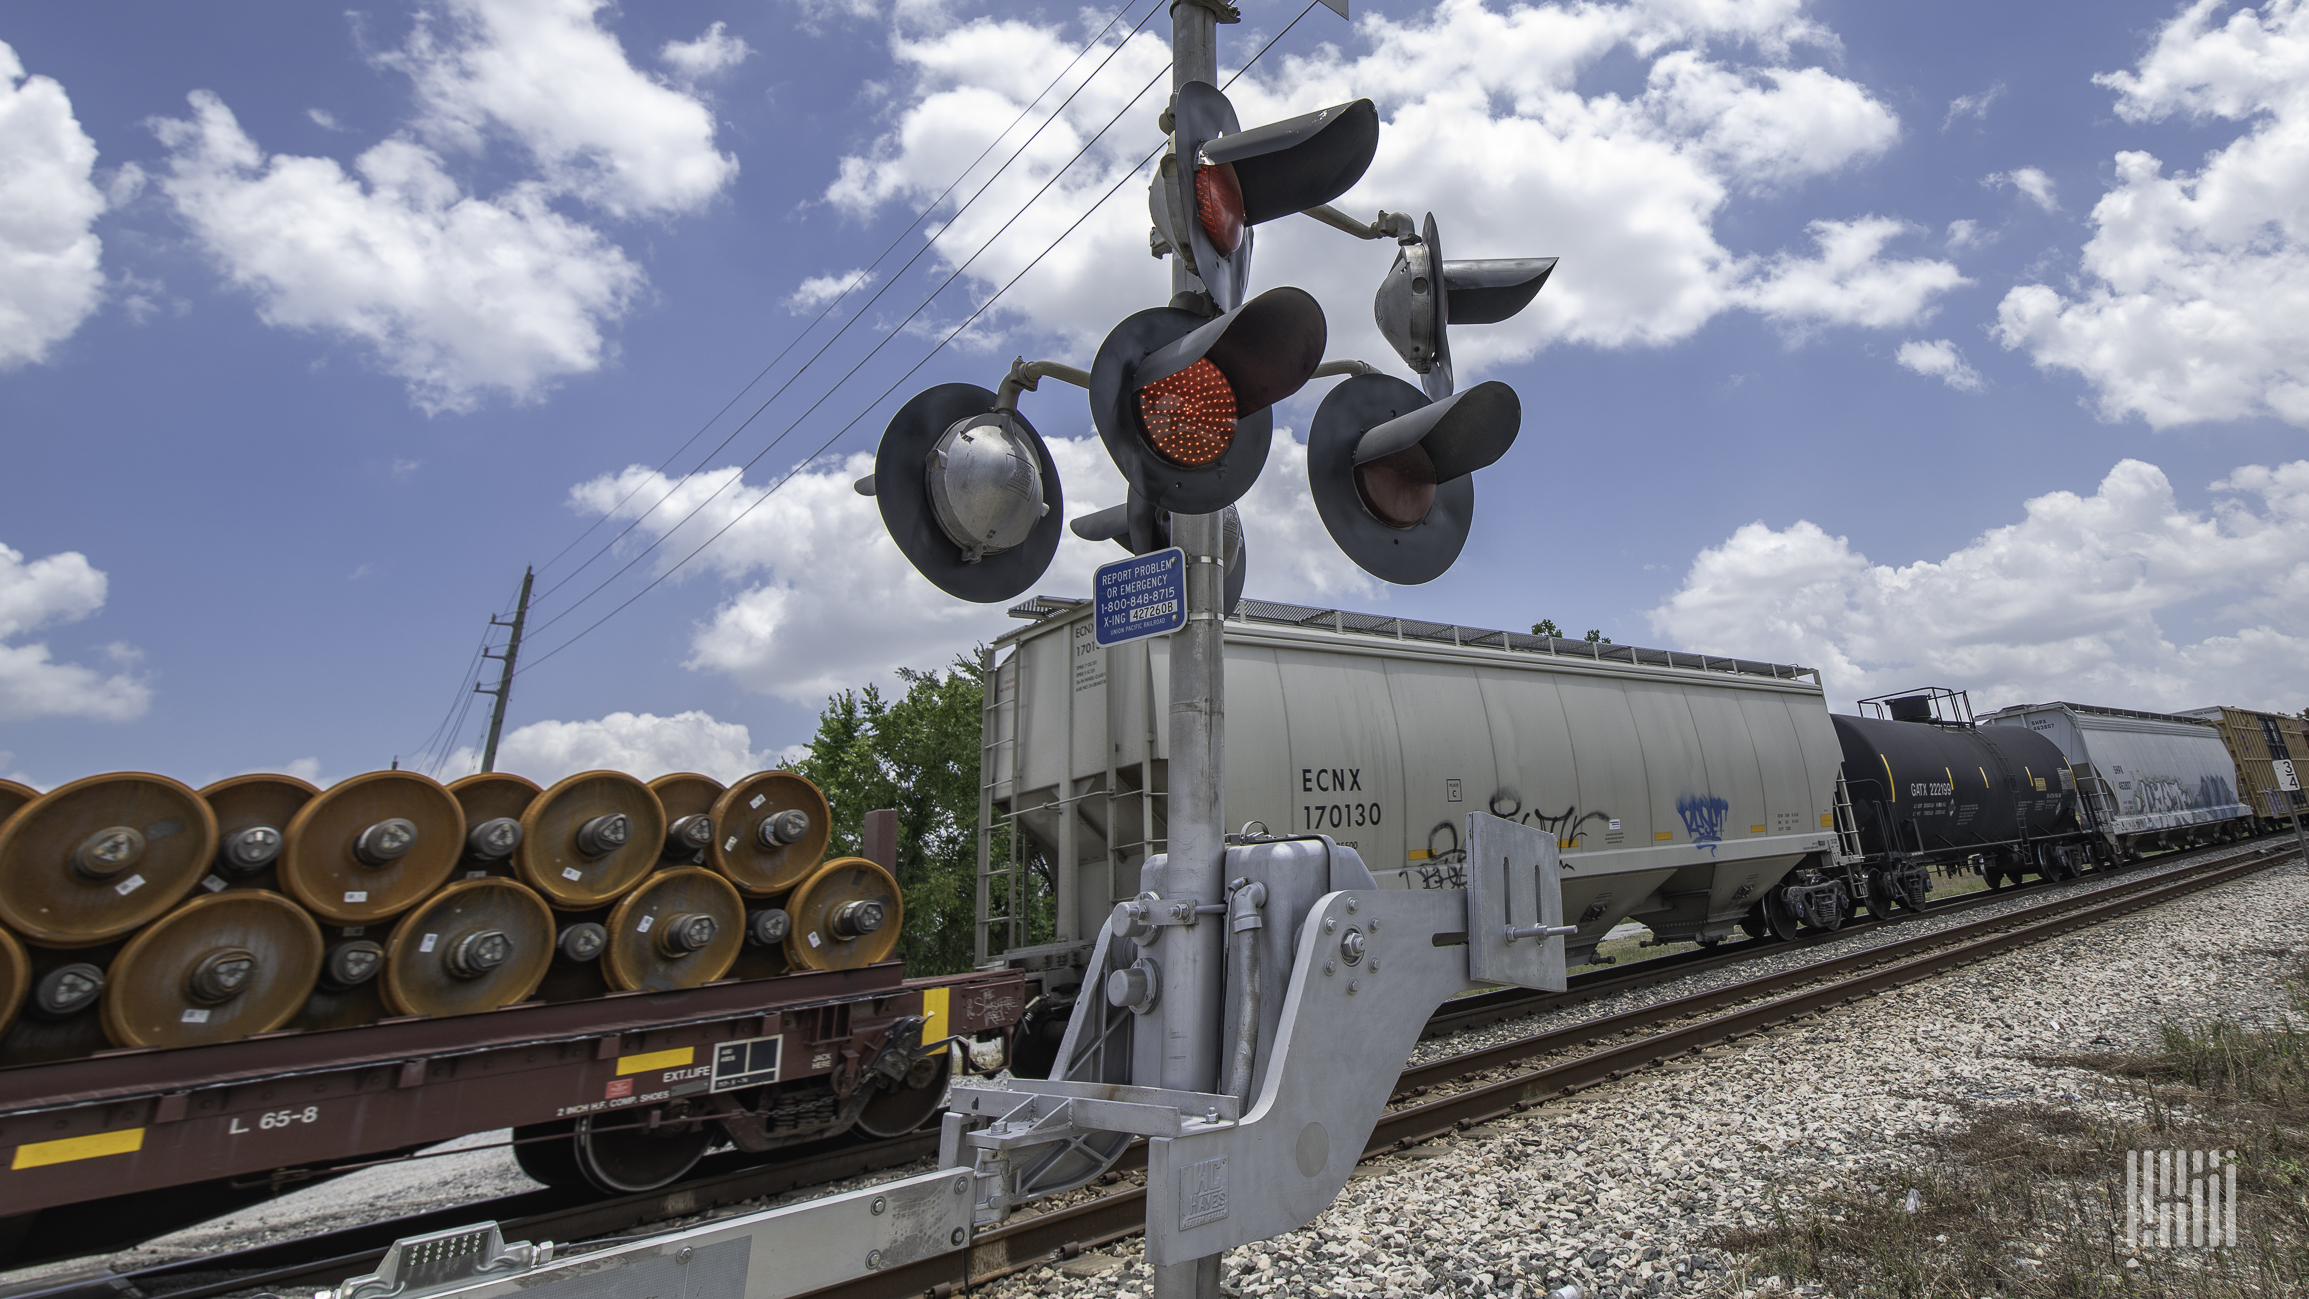 A photograph of a train passing by a rail crossing on a sunny day.